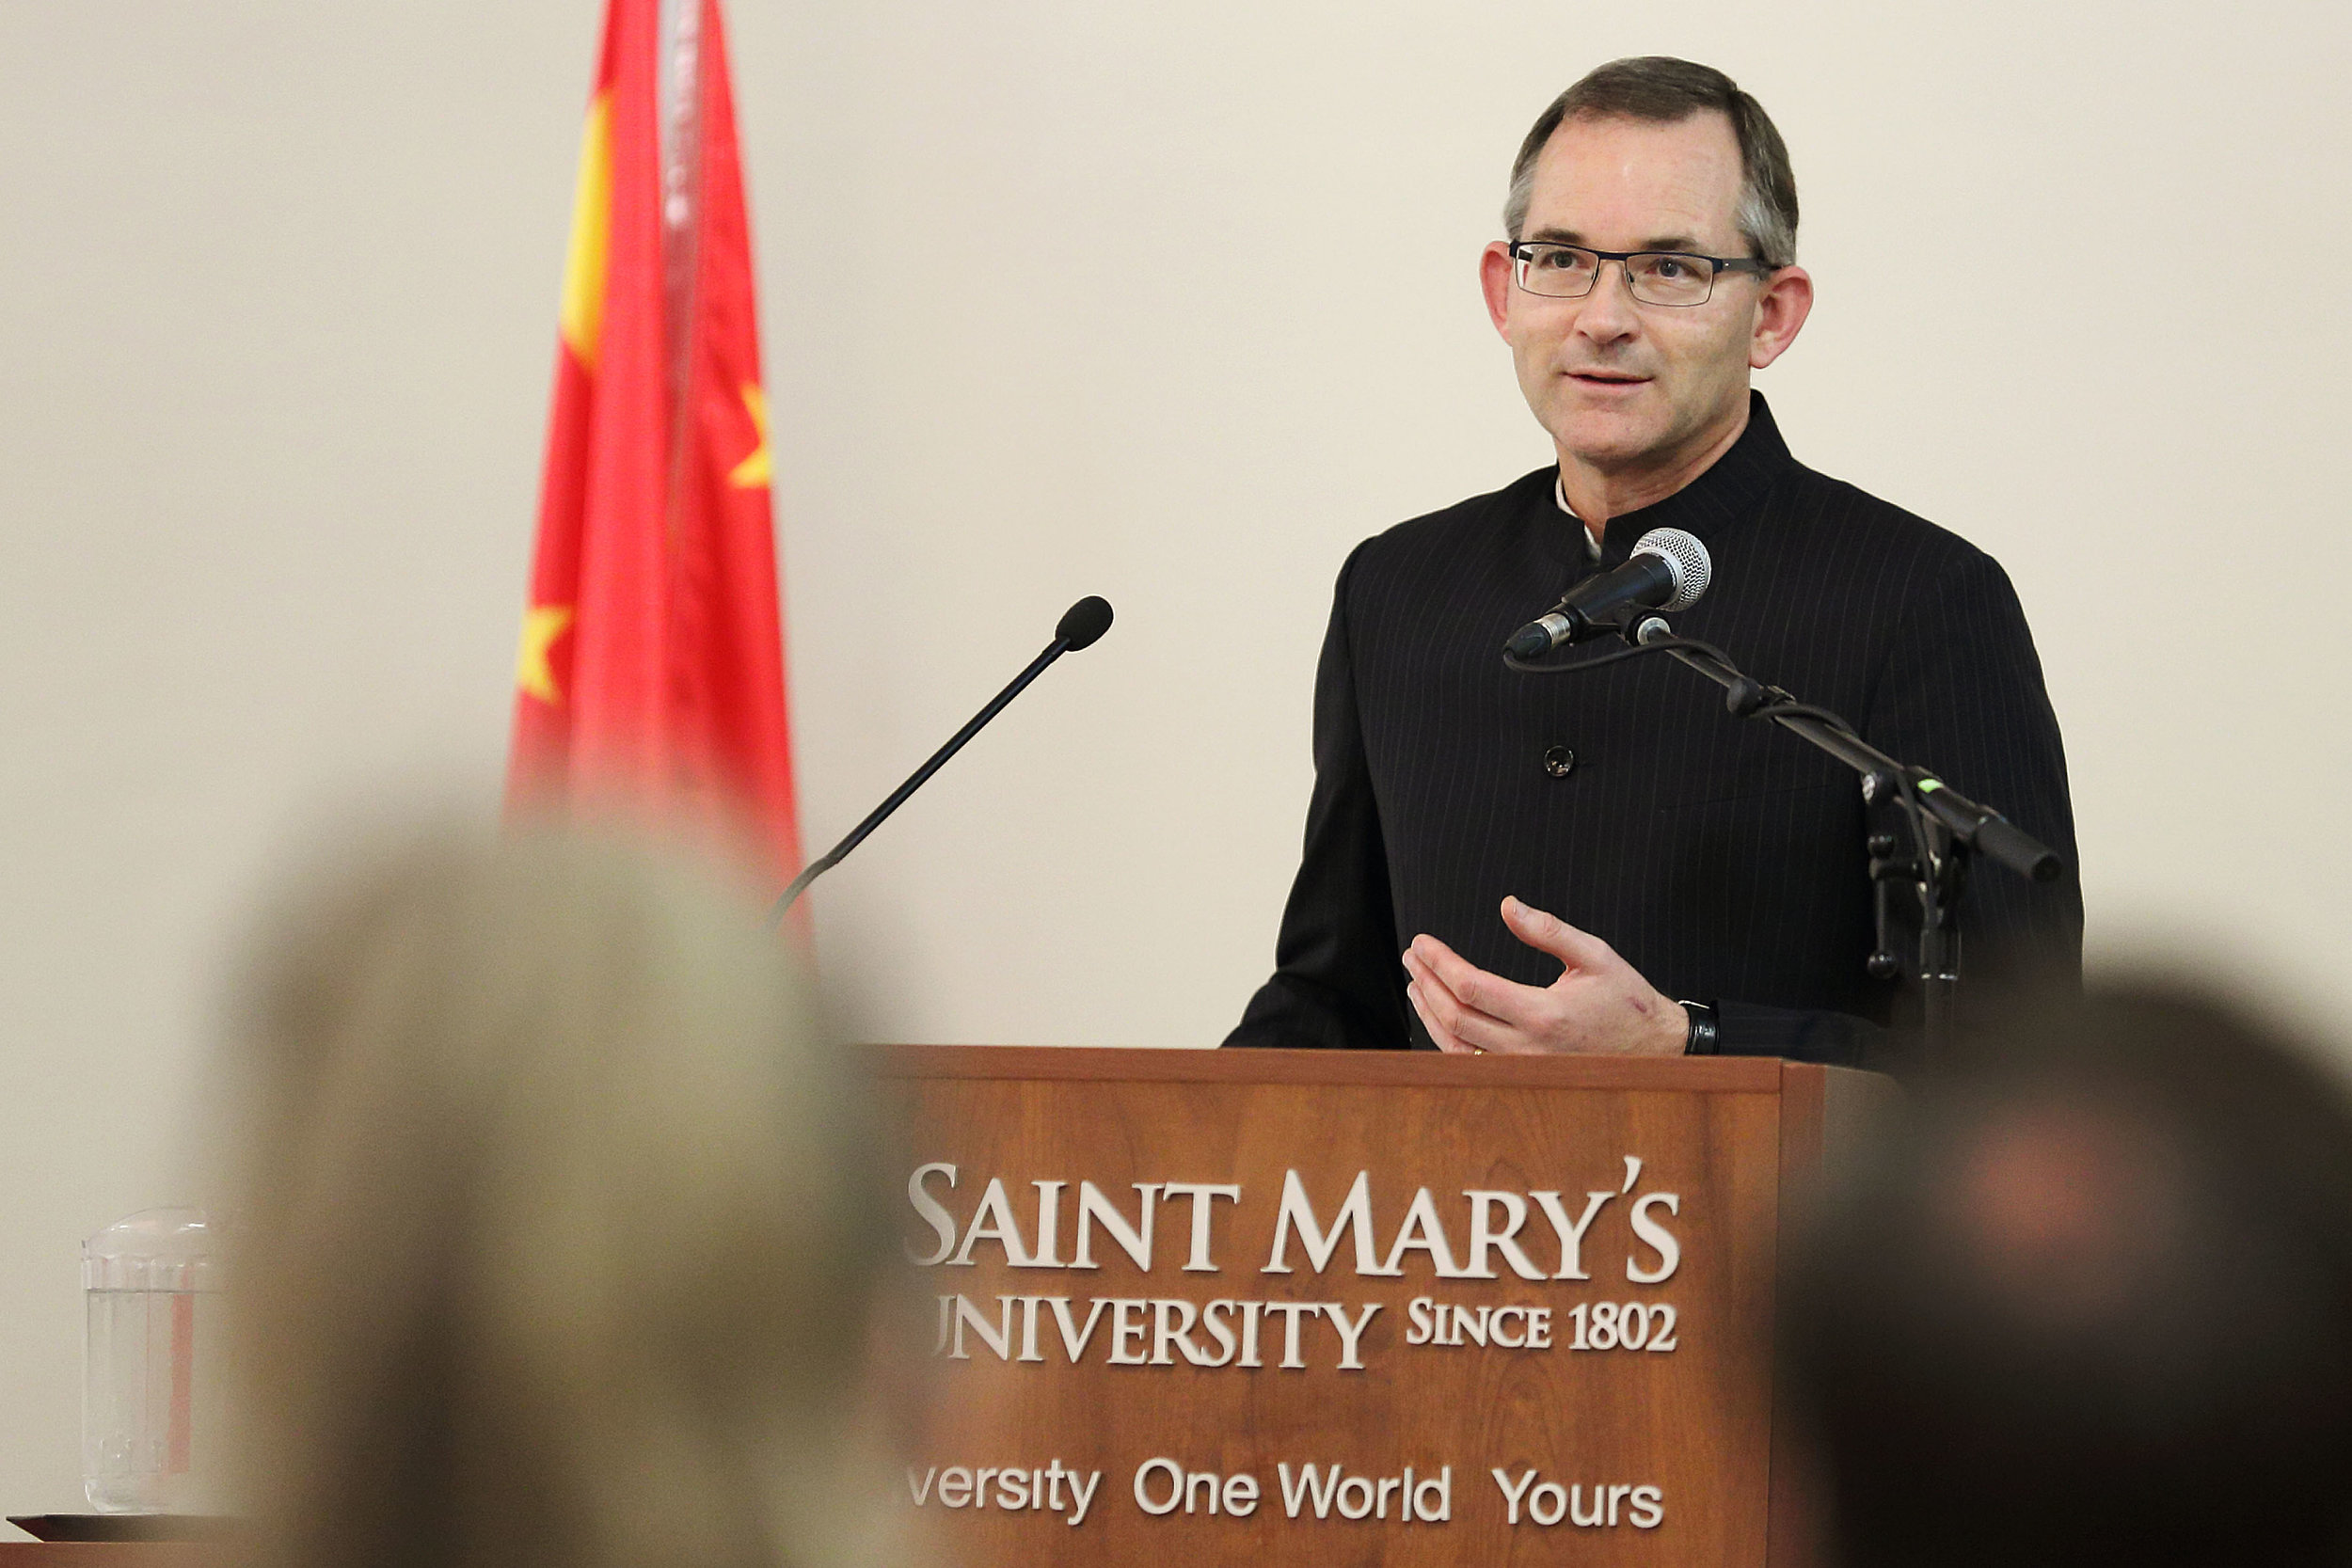 Robert Summerby-Murray, President and Vice-Chancellor, Saint Mary's University